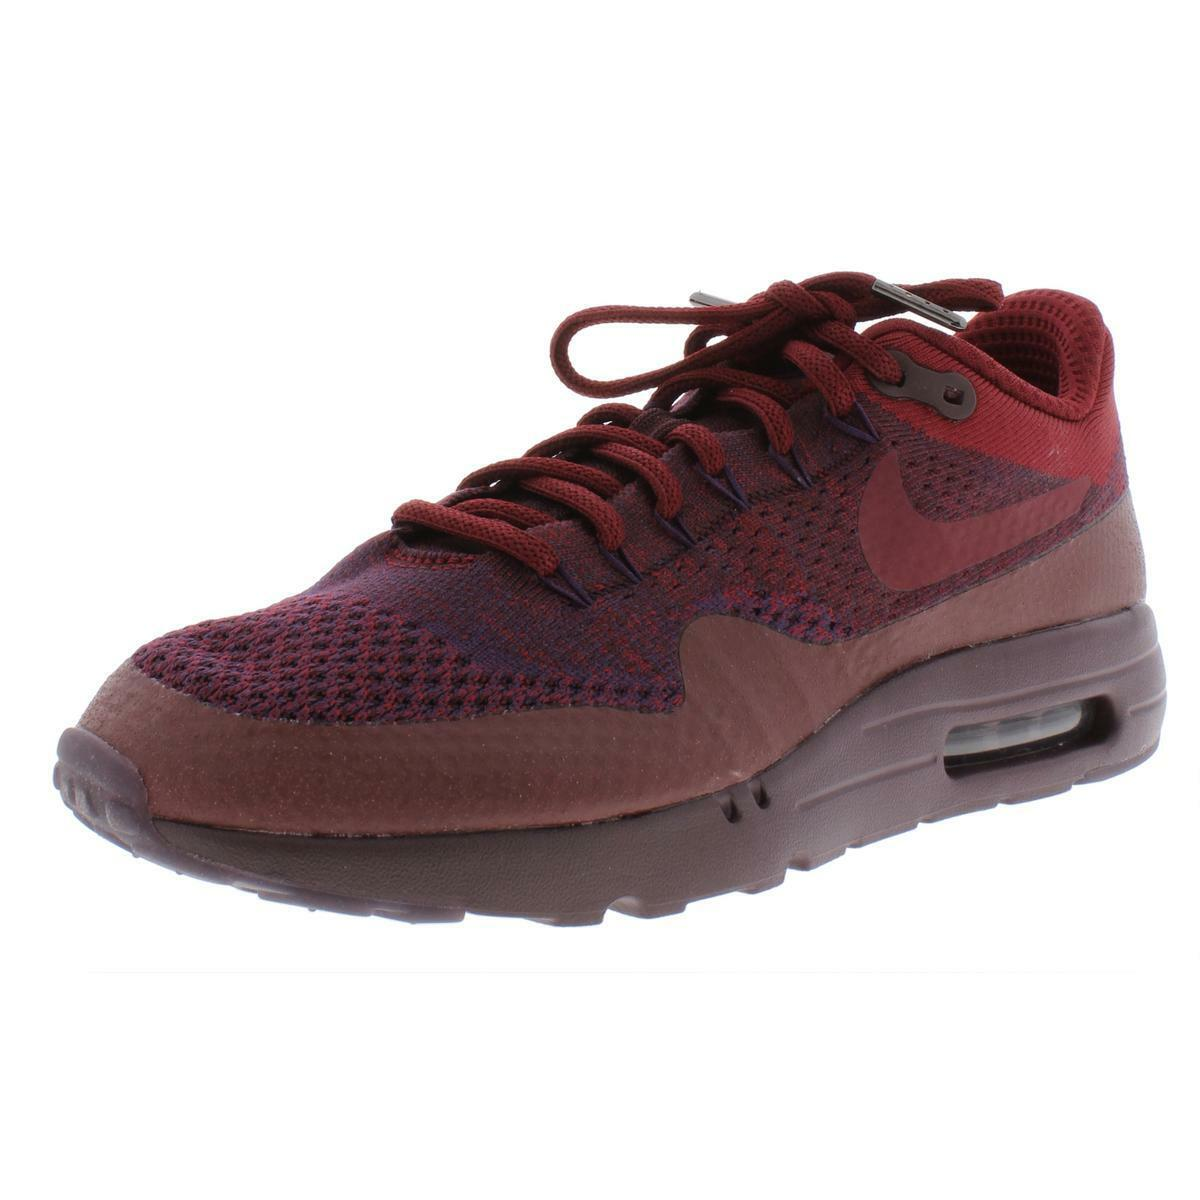 Nike Air Max 1 Ultra Flyknit Grand Purple Red Mens Running Shoes 856958 566 10